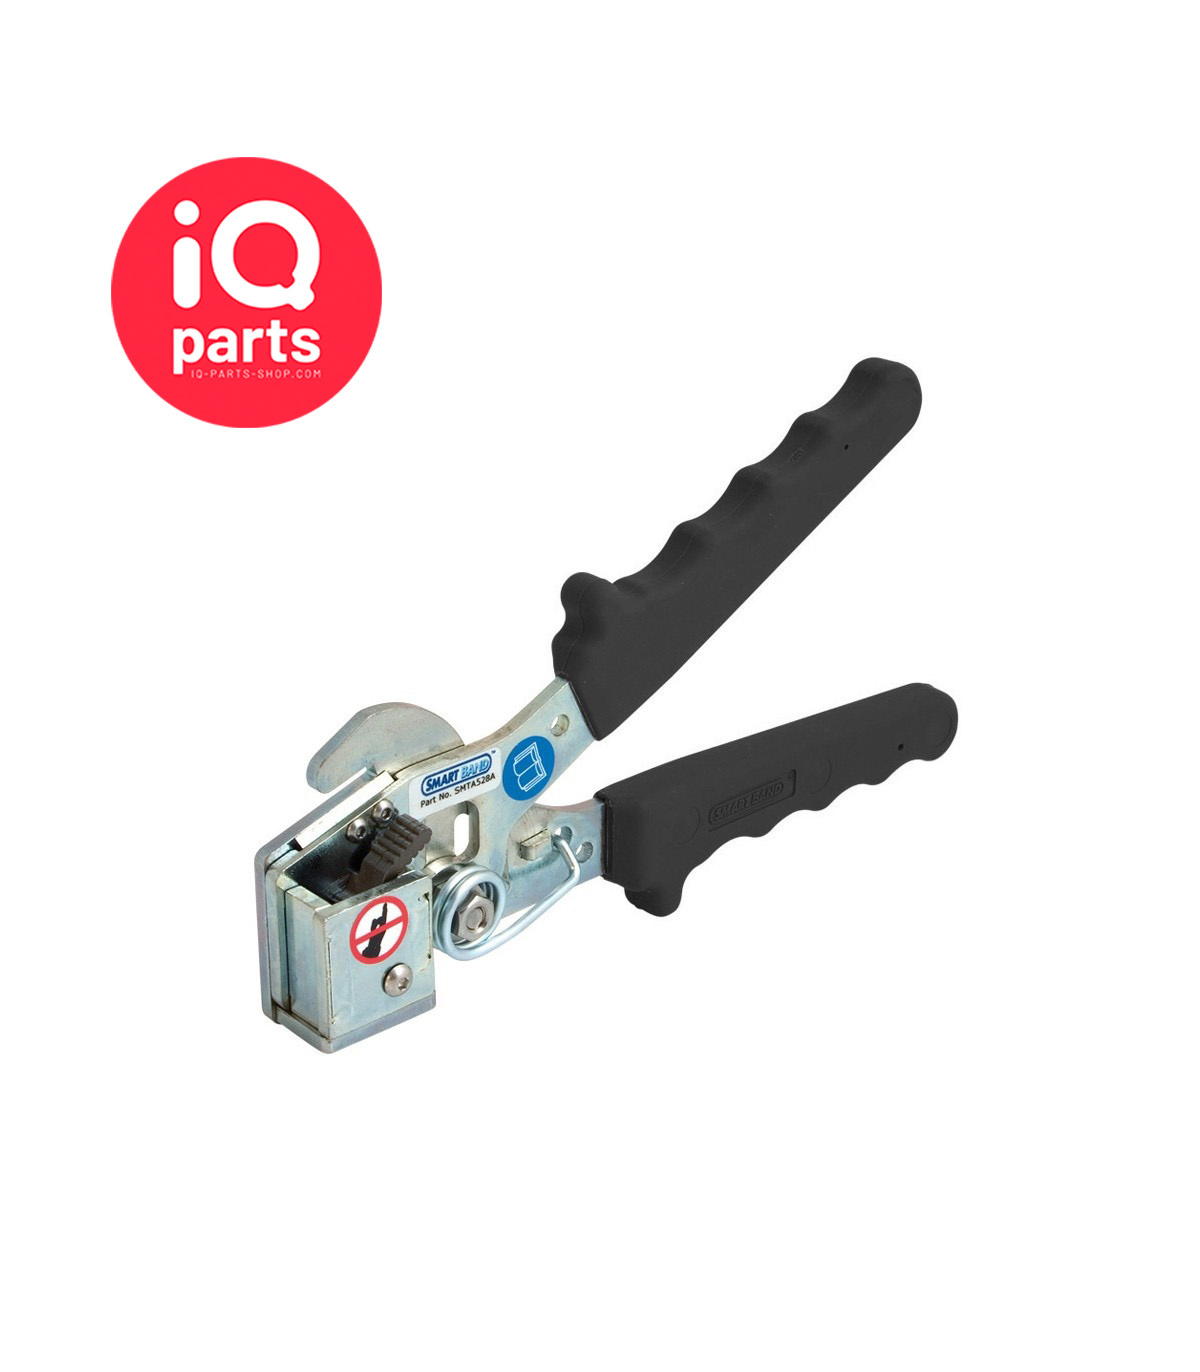 "HCL Smart Band Tool - 7 mm & 10 mm systems (3/8"" & 1/4"")"